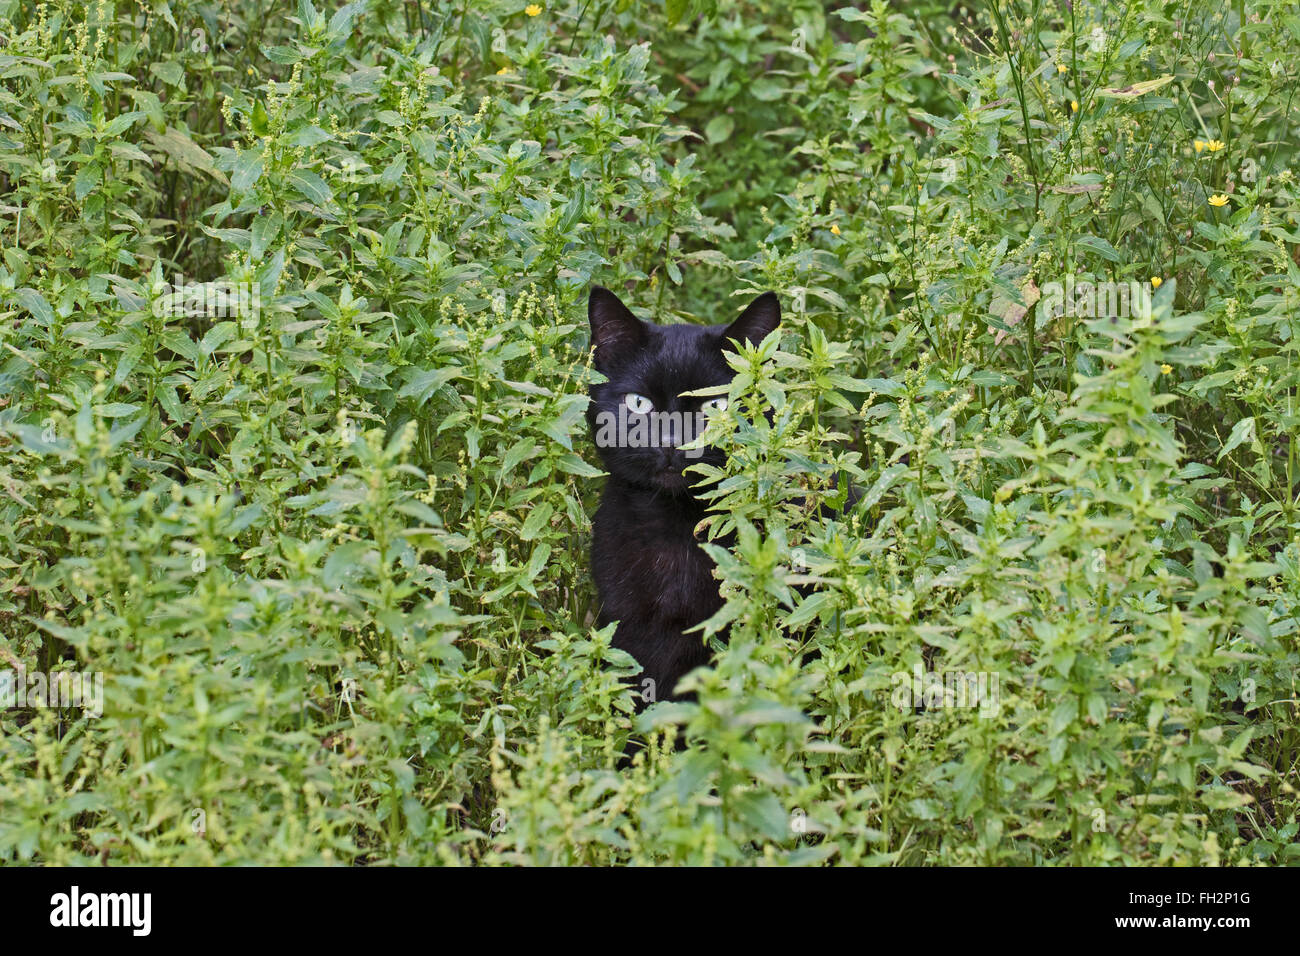 A young black cat looking out from its place of concealment - Stock Image